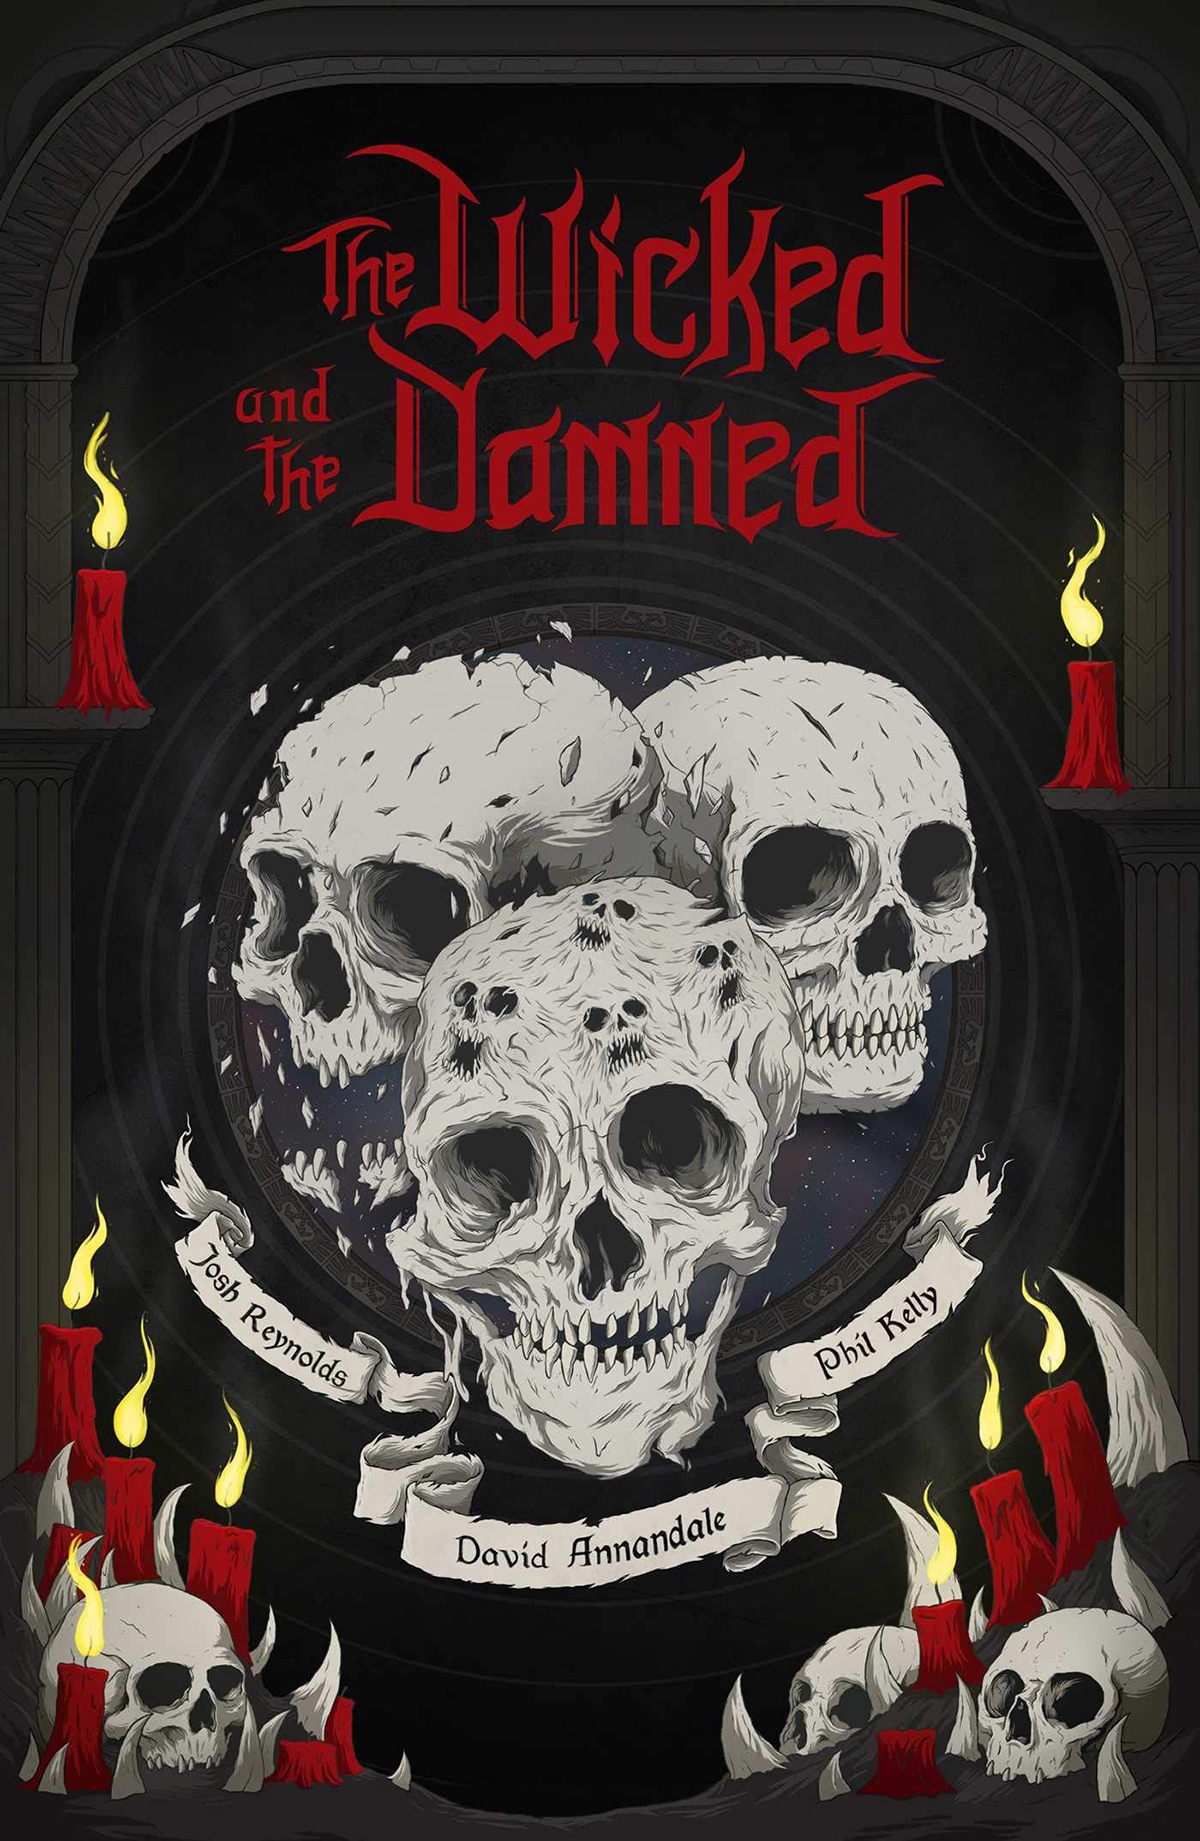 THE WICKED AND THE DAMNED (ANGLAIS)